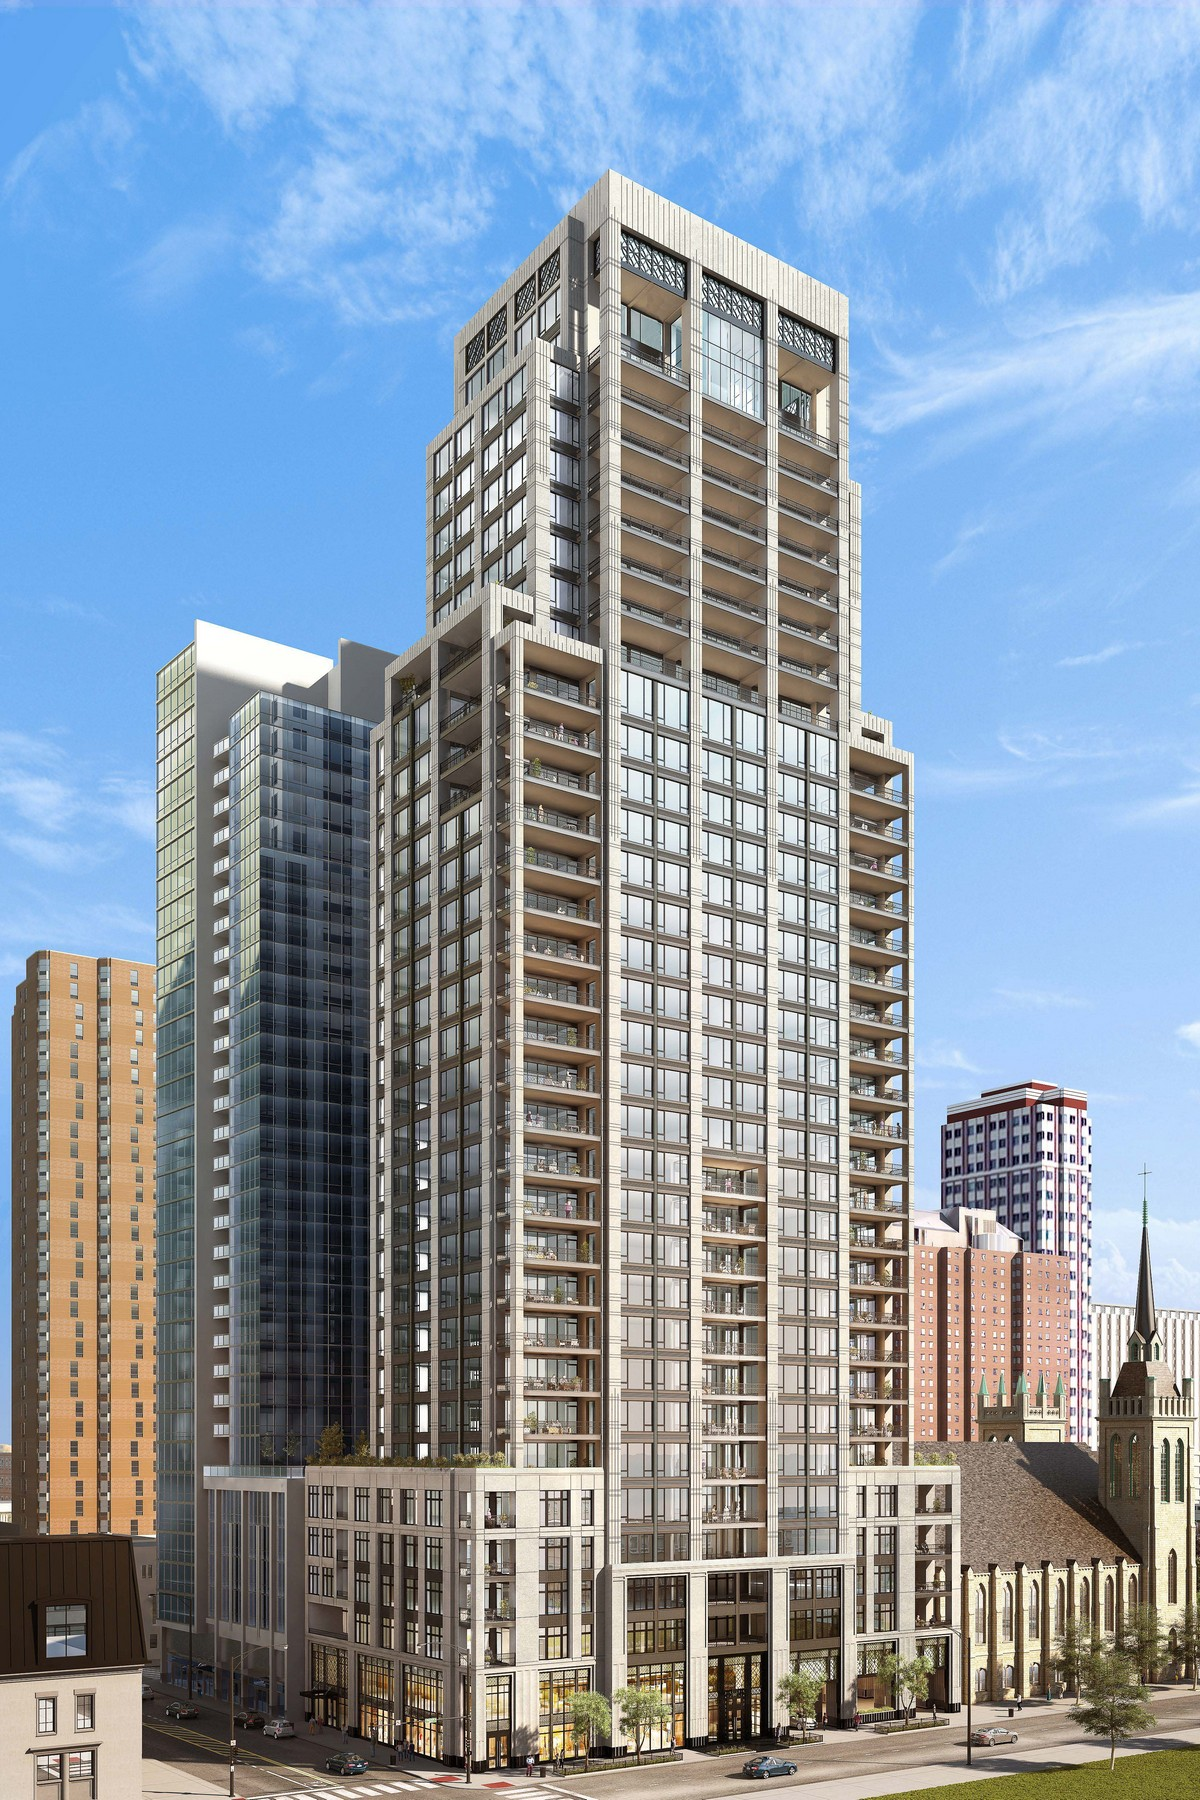 Condominium for Sale at No. 9 Walton 9 W Walton Street Unit 601 Near North Side, Chicago, Illinois, 60610 United States